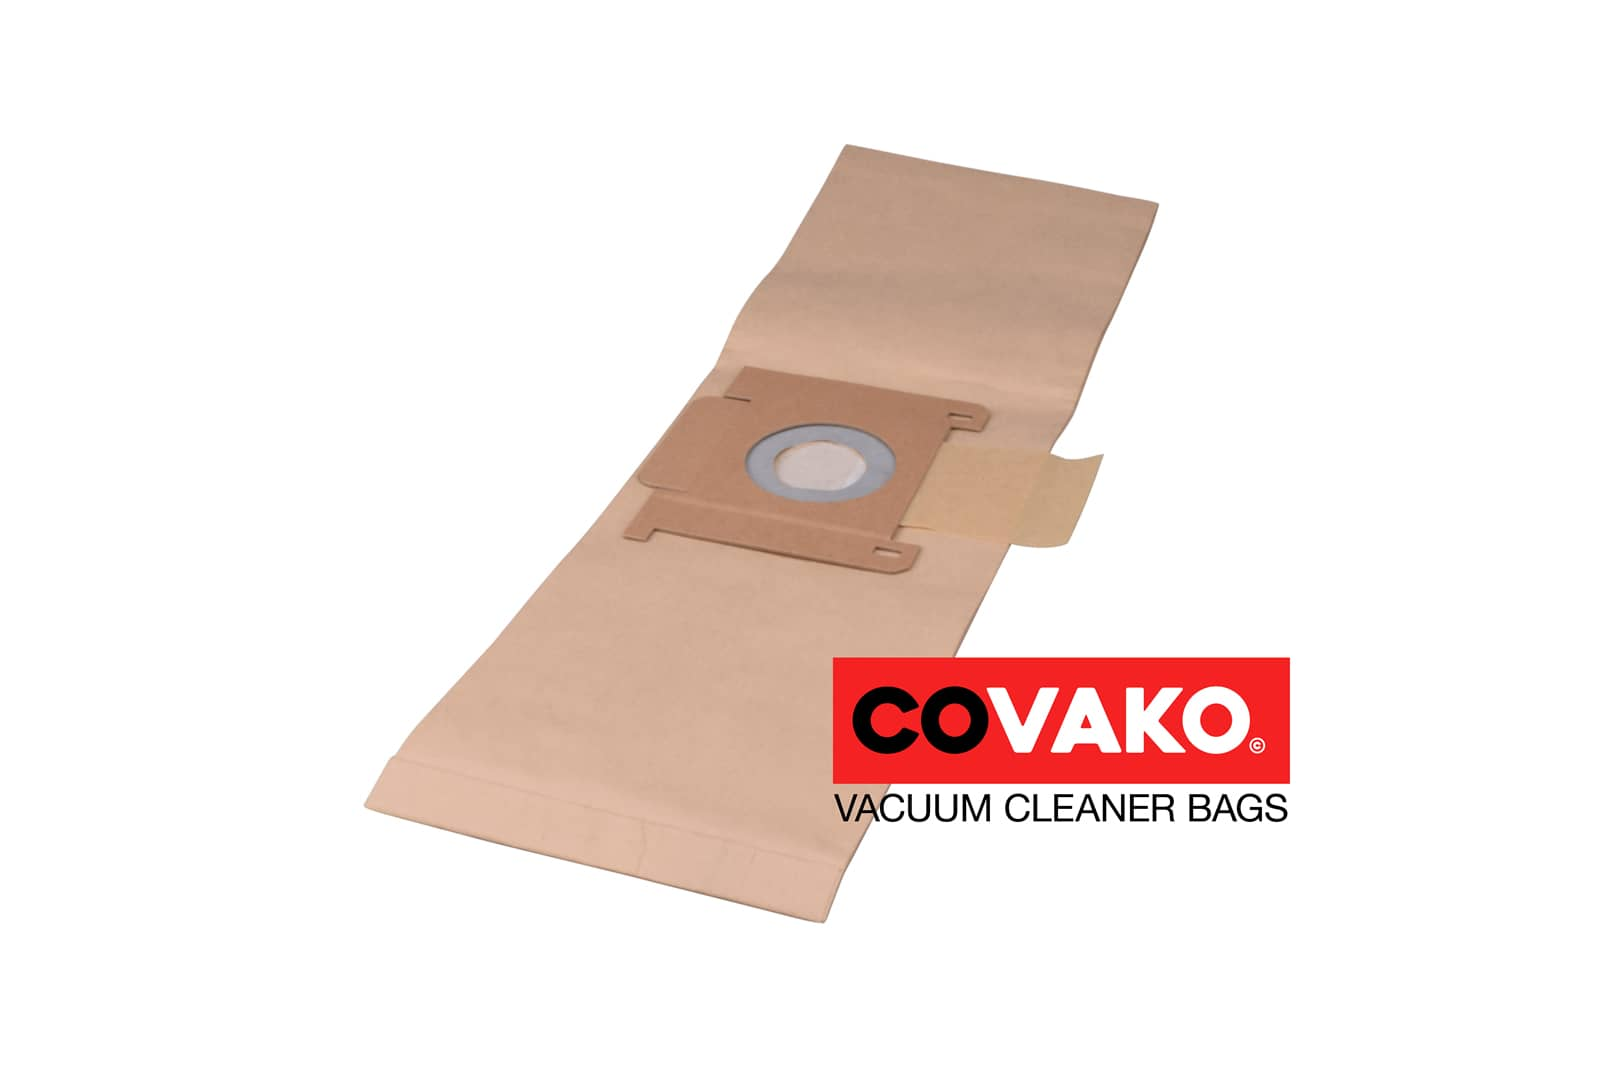 Oehme Otto C 5 / Paper - Oehme Otto vacuum cleaner bags